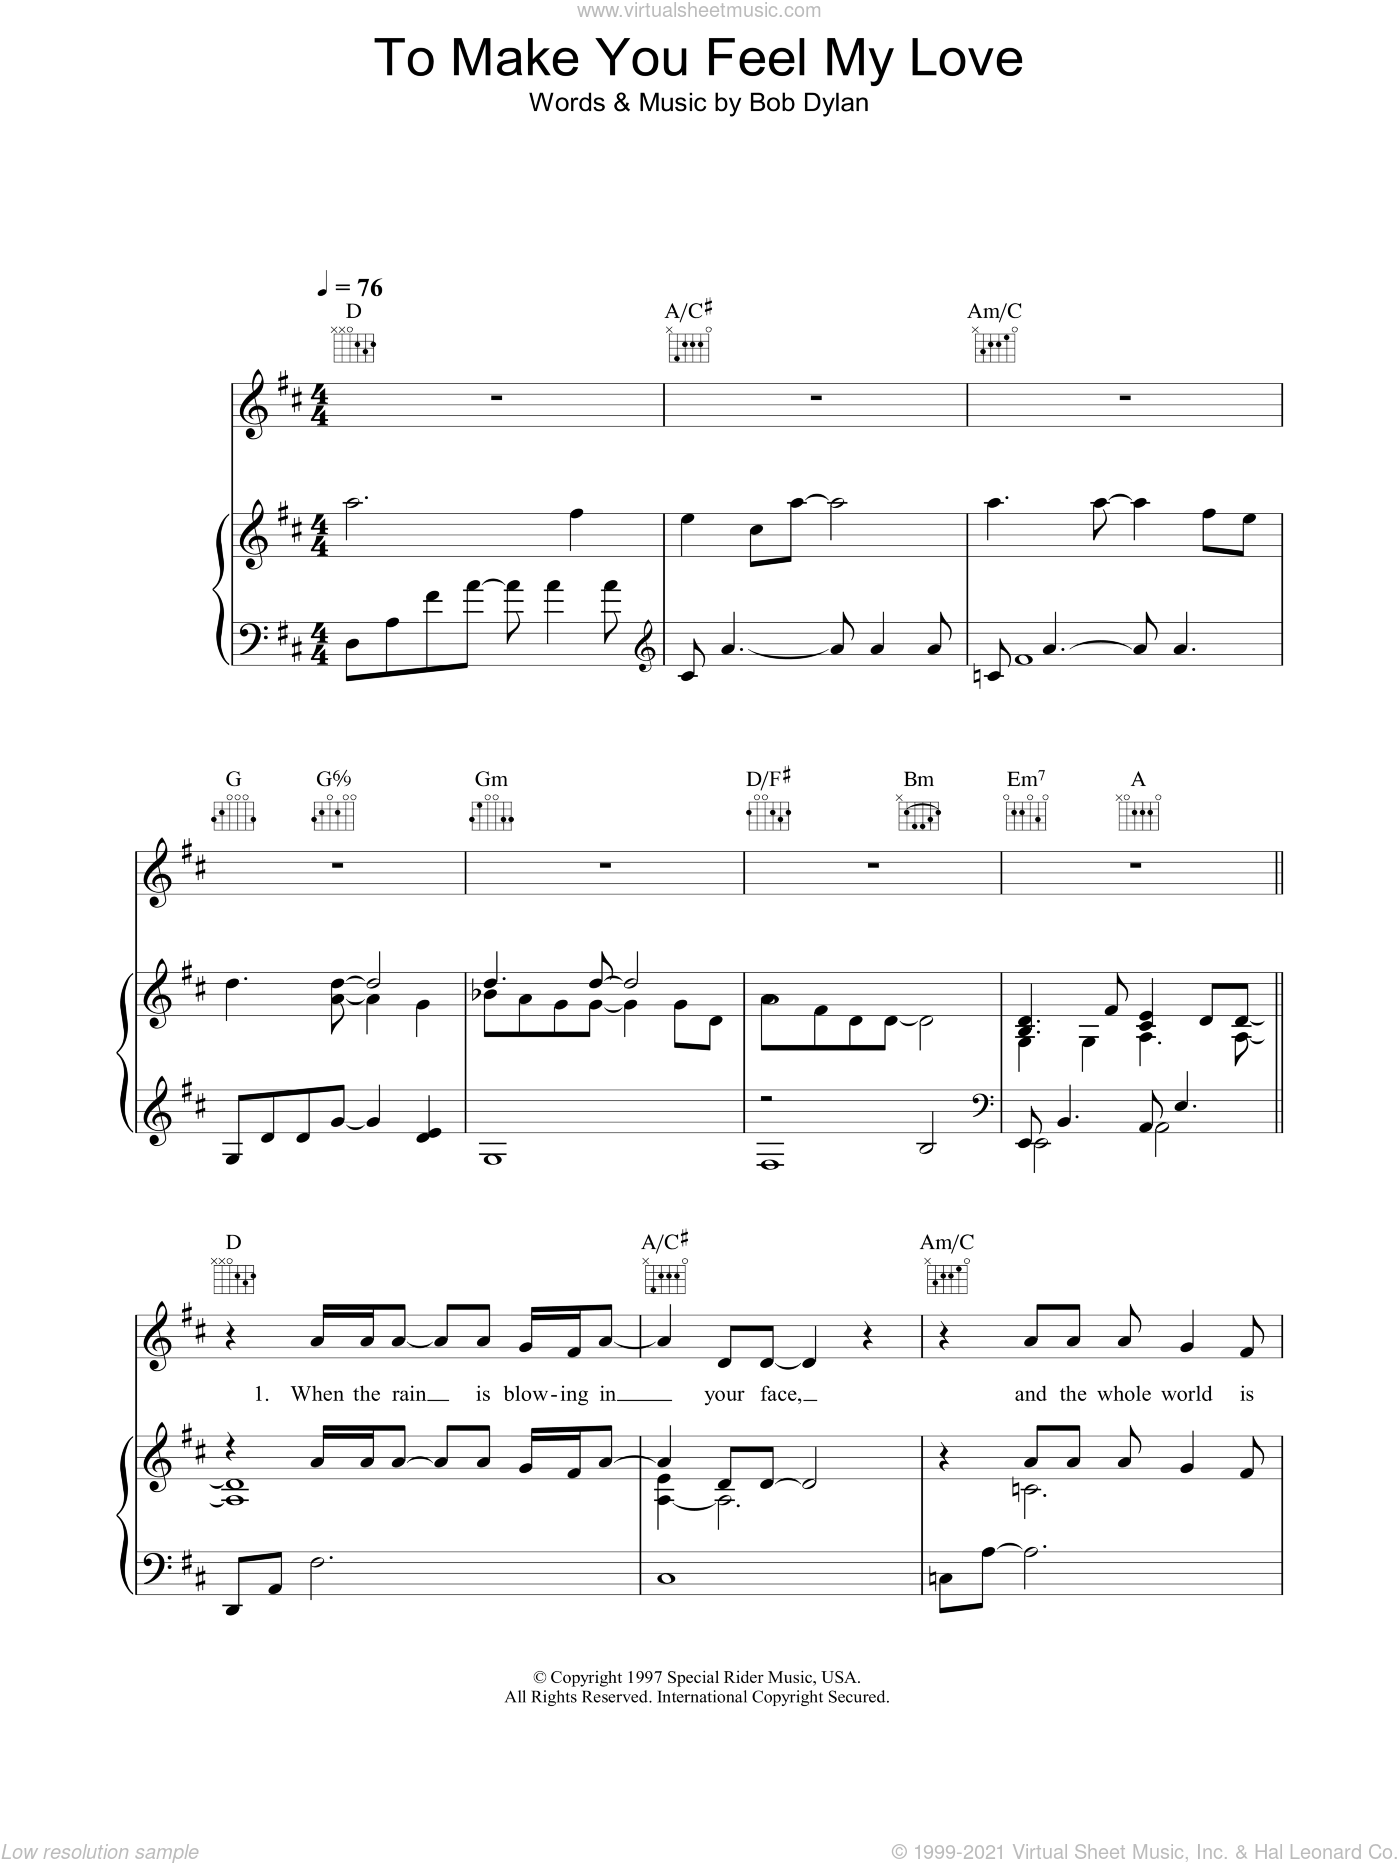 To Make You Feel My Love sheet music for voice, piano or guitar by Garth Brooks and Bob Dylan. Score Image Preview.